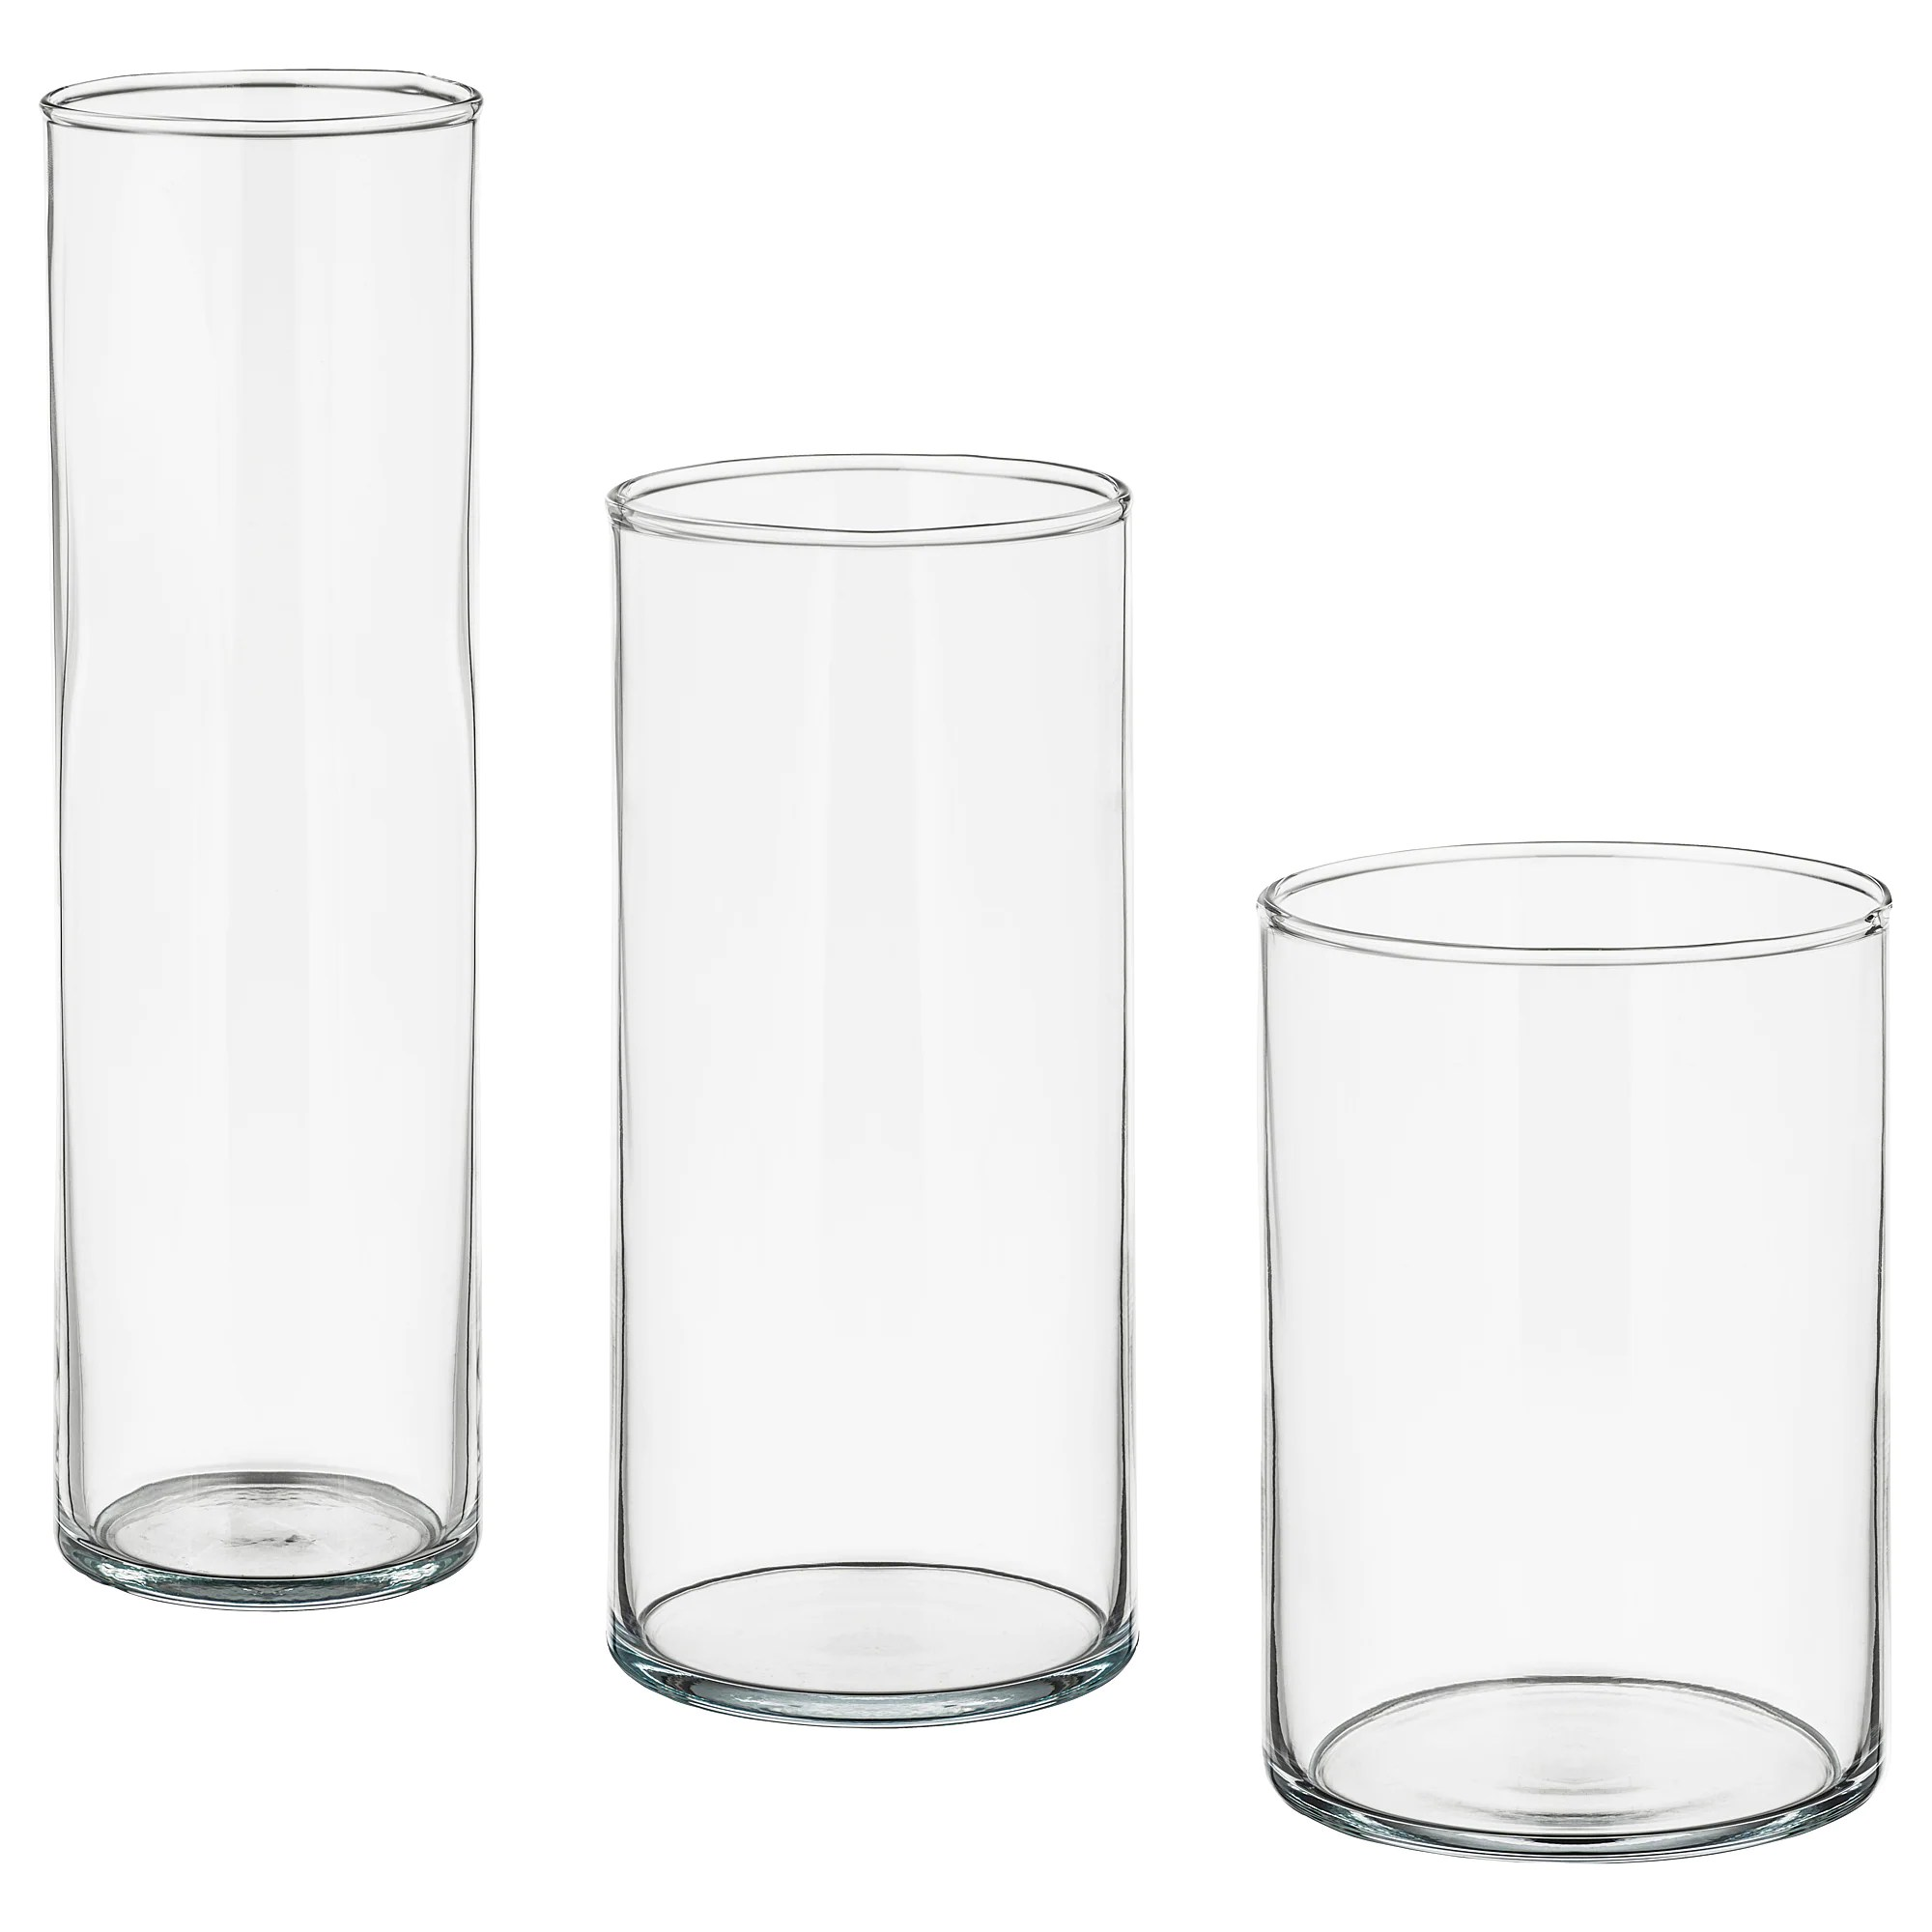 Glass Vases Ikea Cylinder Vase Set Of 3 Clear Glass